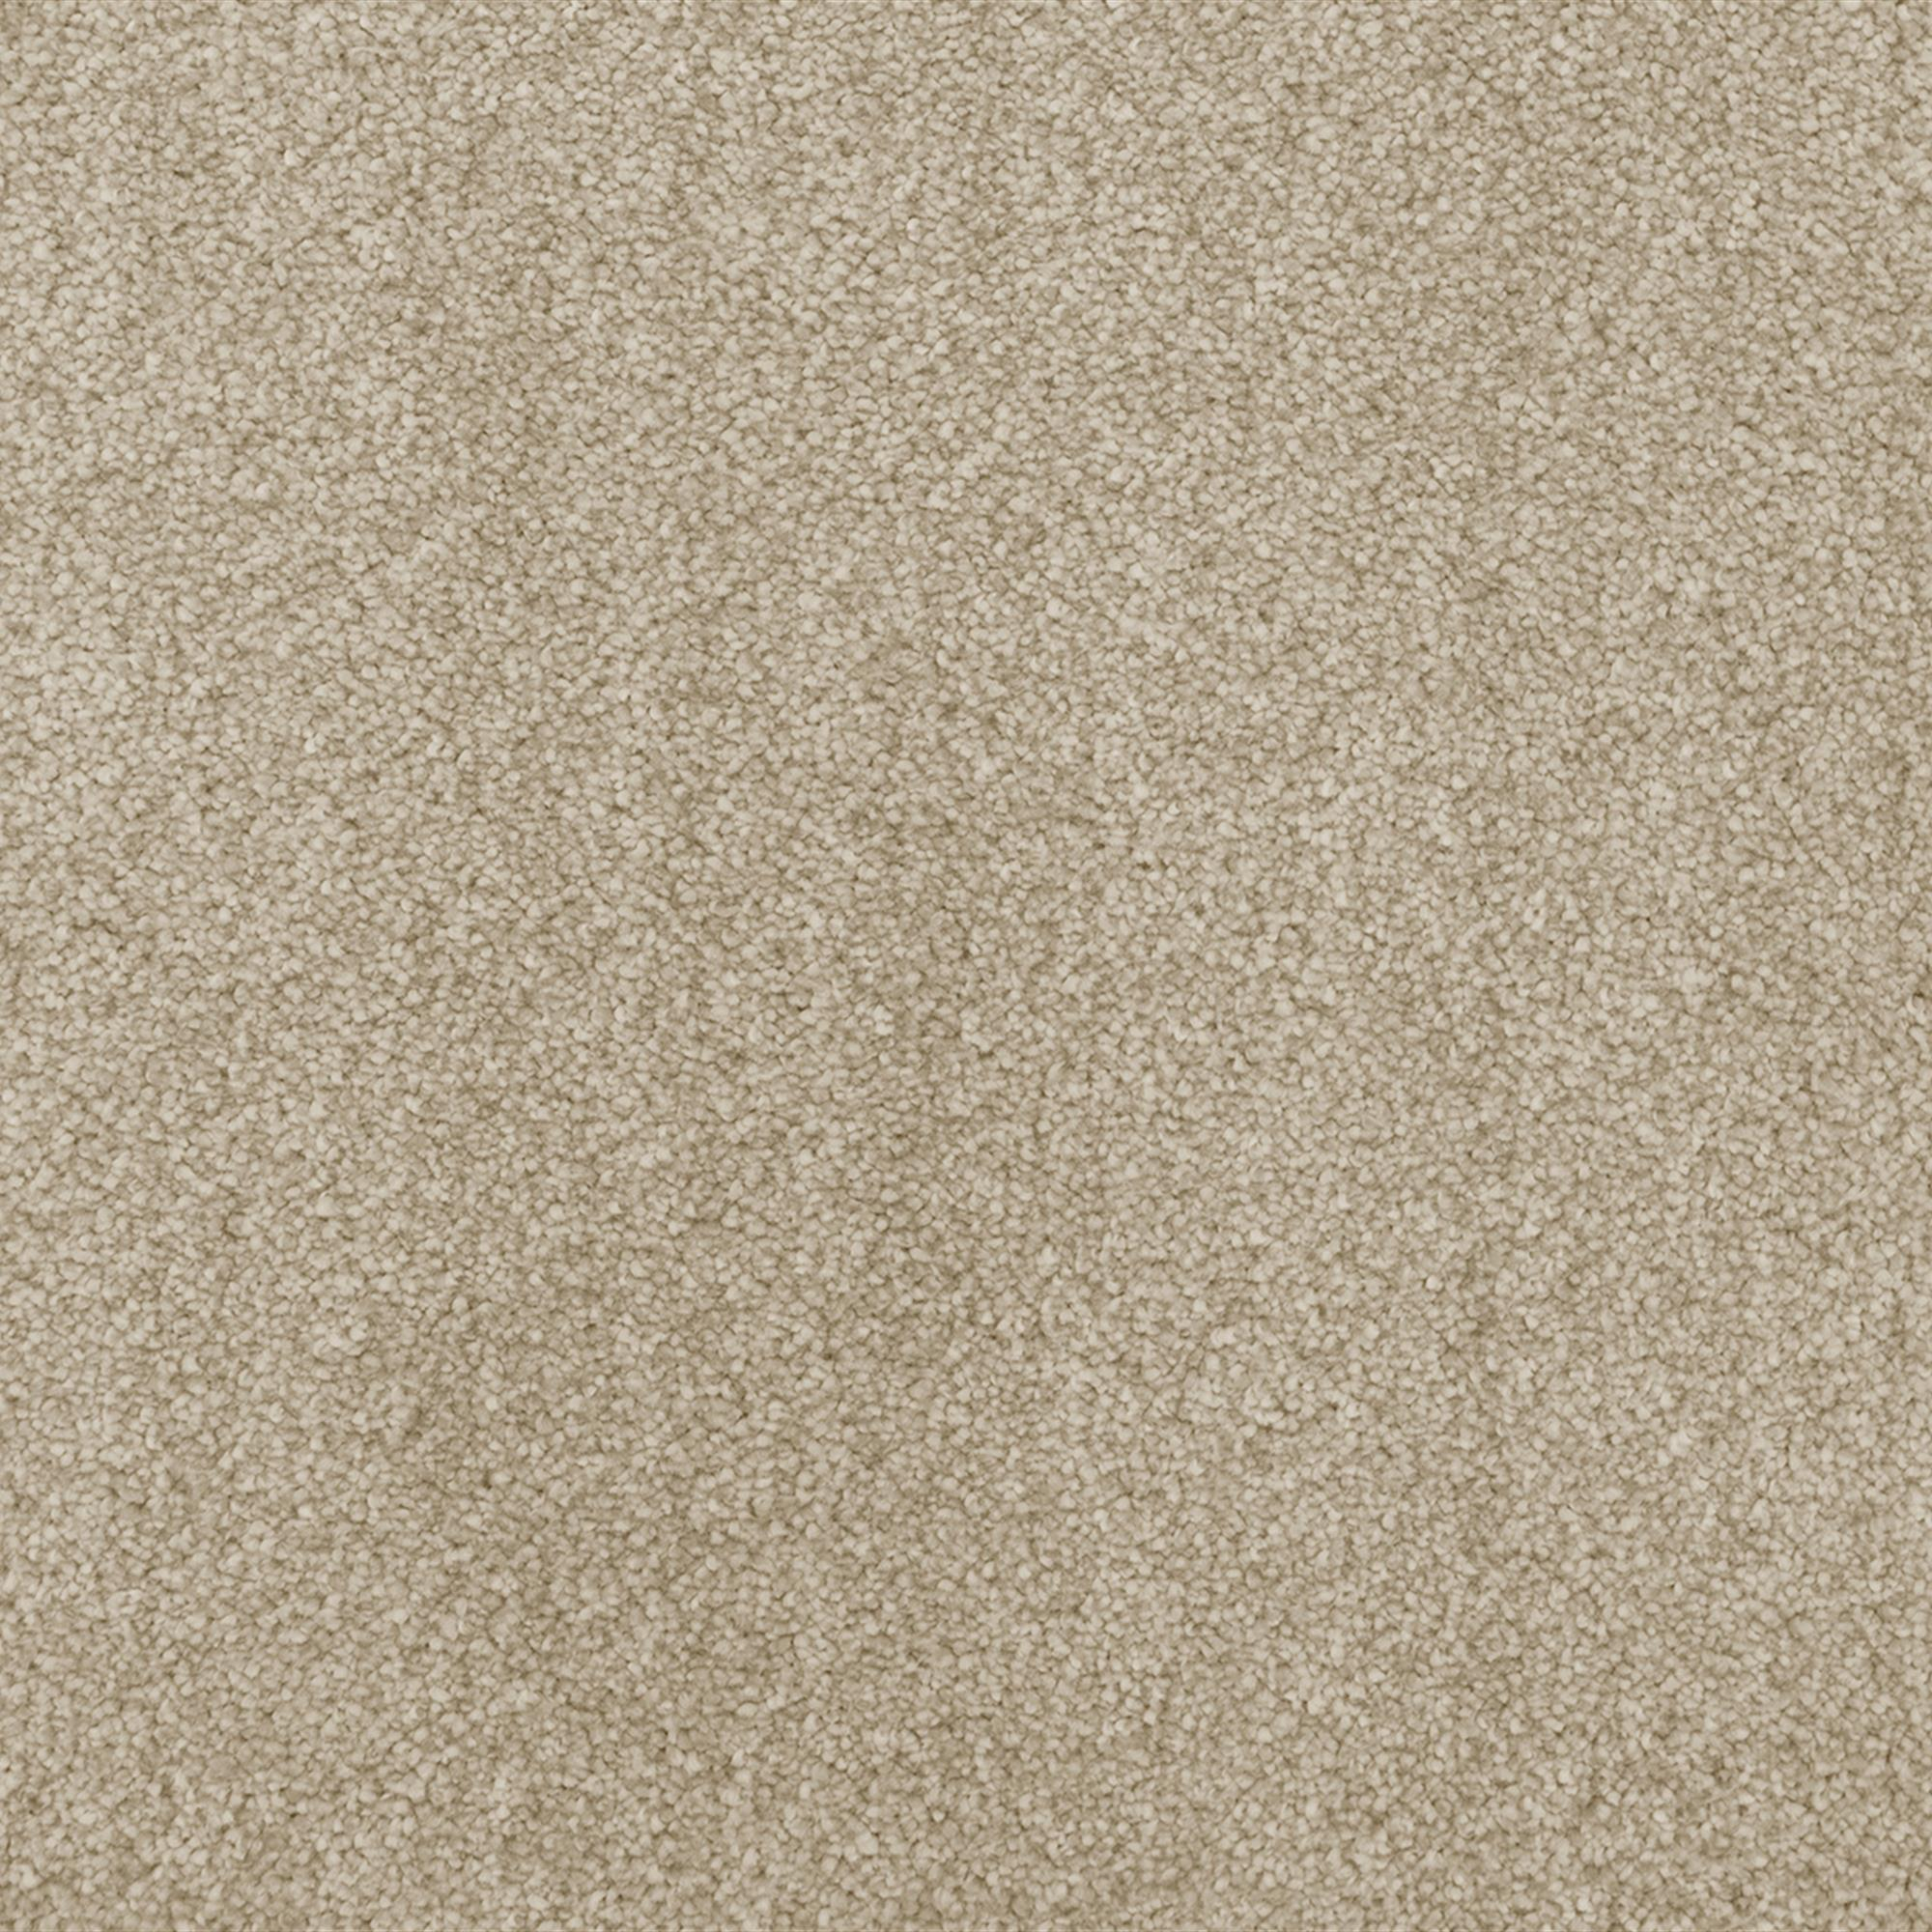 Invictus Peconic Carpet, 33 Temple, swatch